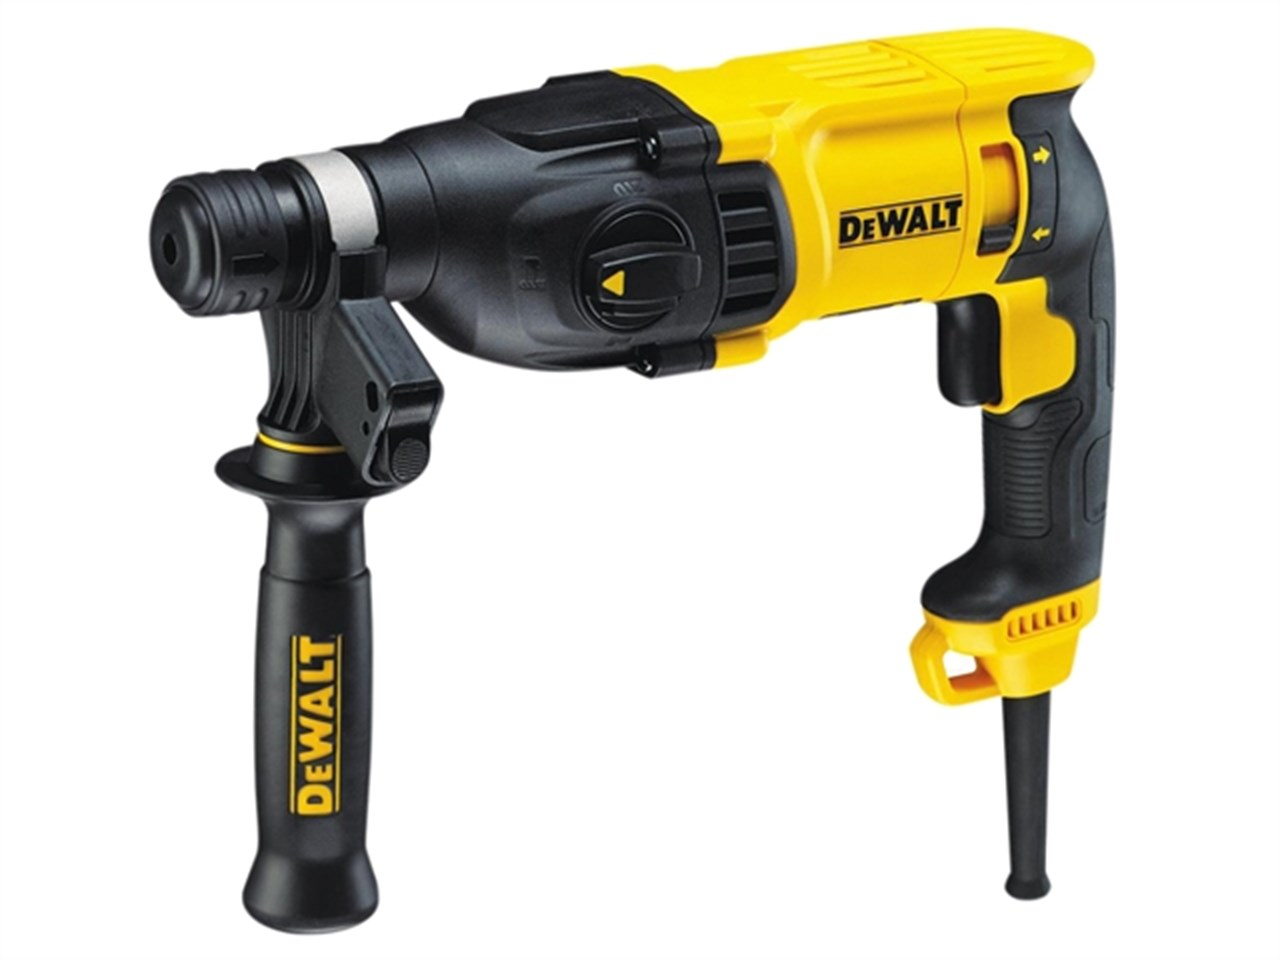 Dewalt SDS Hammer Drill 110V 26mm 3 Mode (c/w SDS_Plus Drillset)